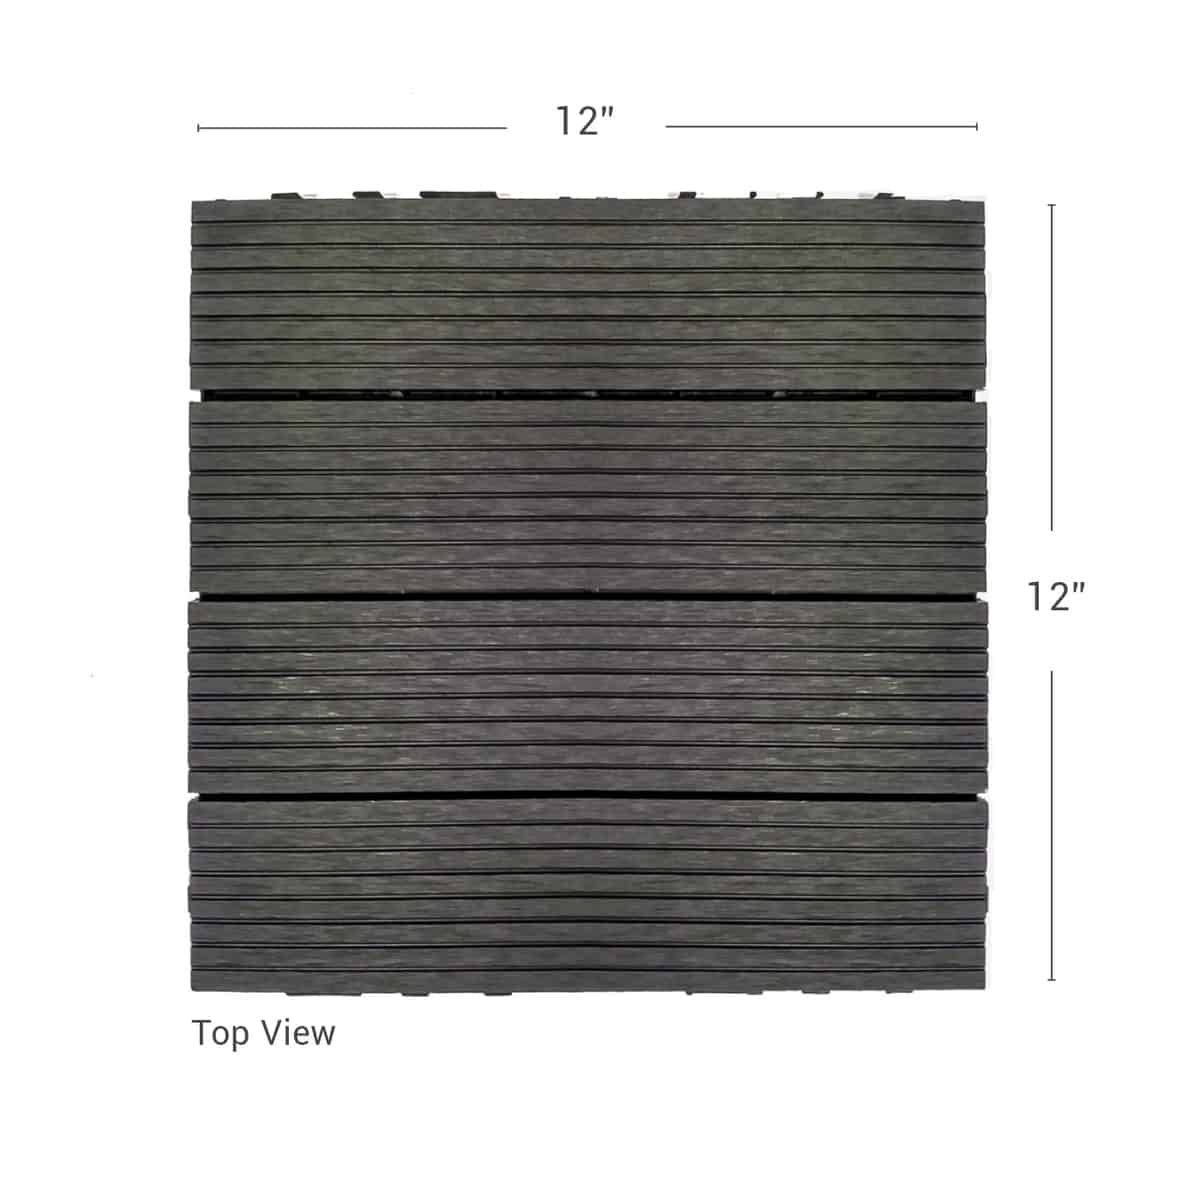 Composite Deck Tiles Wood Plastic Composite Wpc Deck Tiles Charcoal Urban